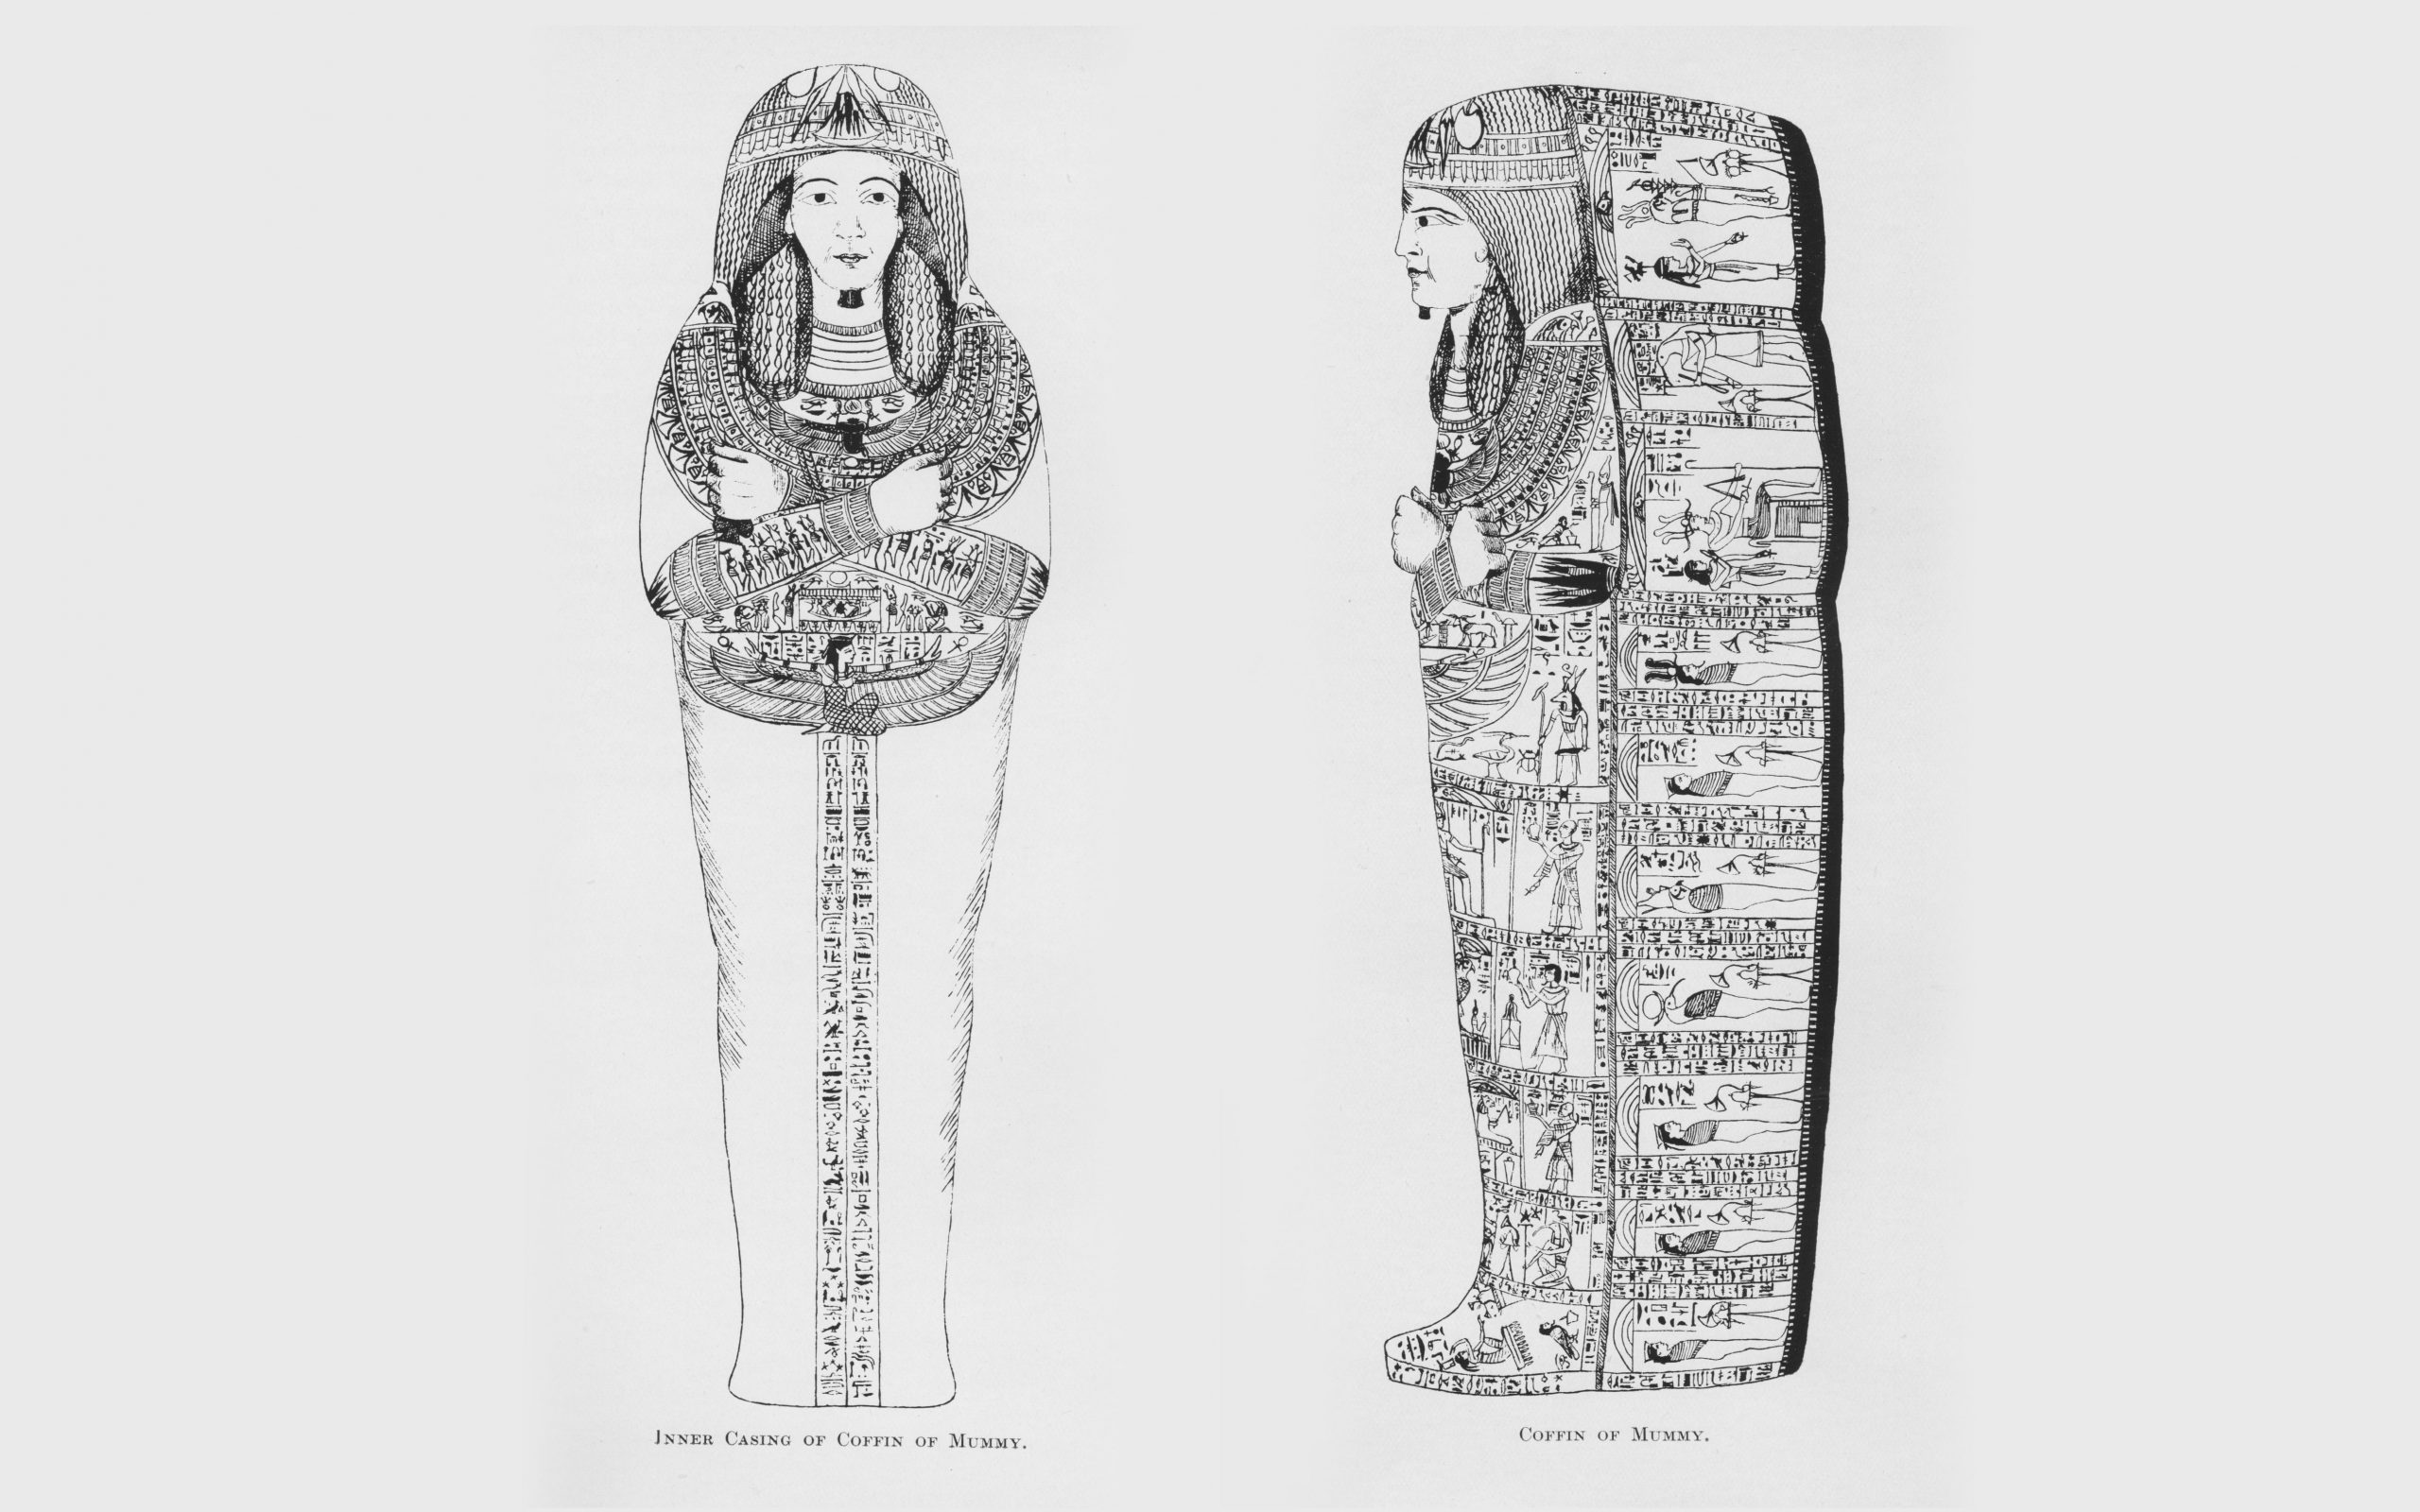 A picture of the Mummy of the priest Nesyamun, drawn by curator Henry Denny in 1828.